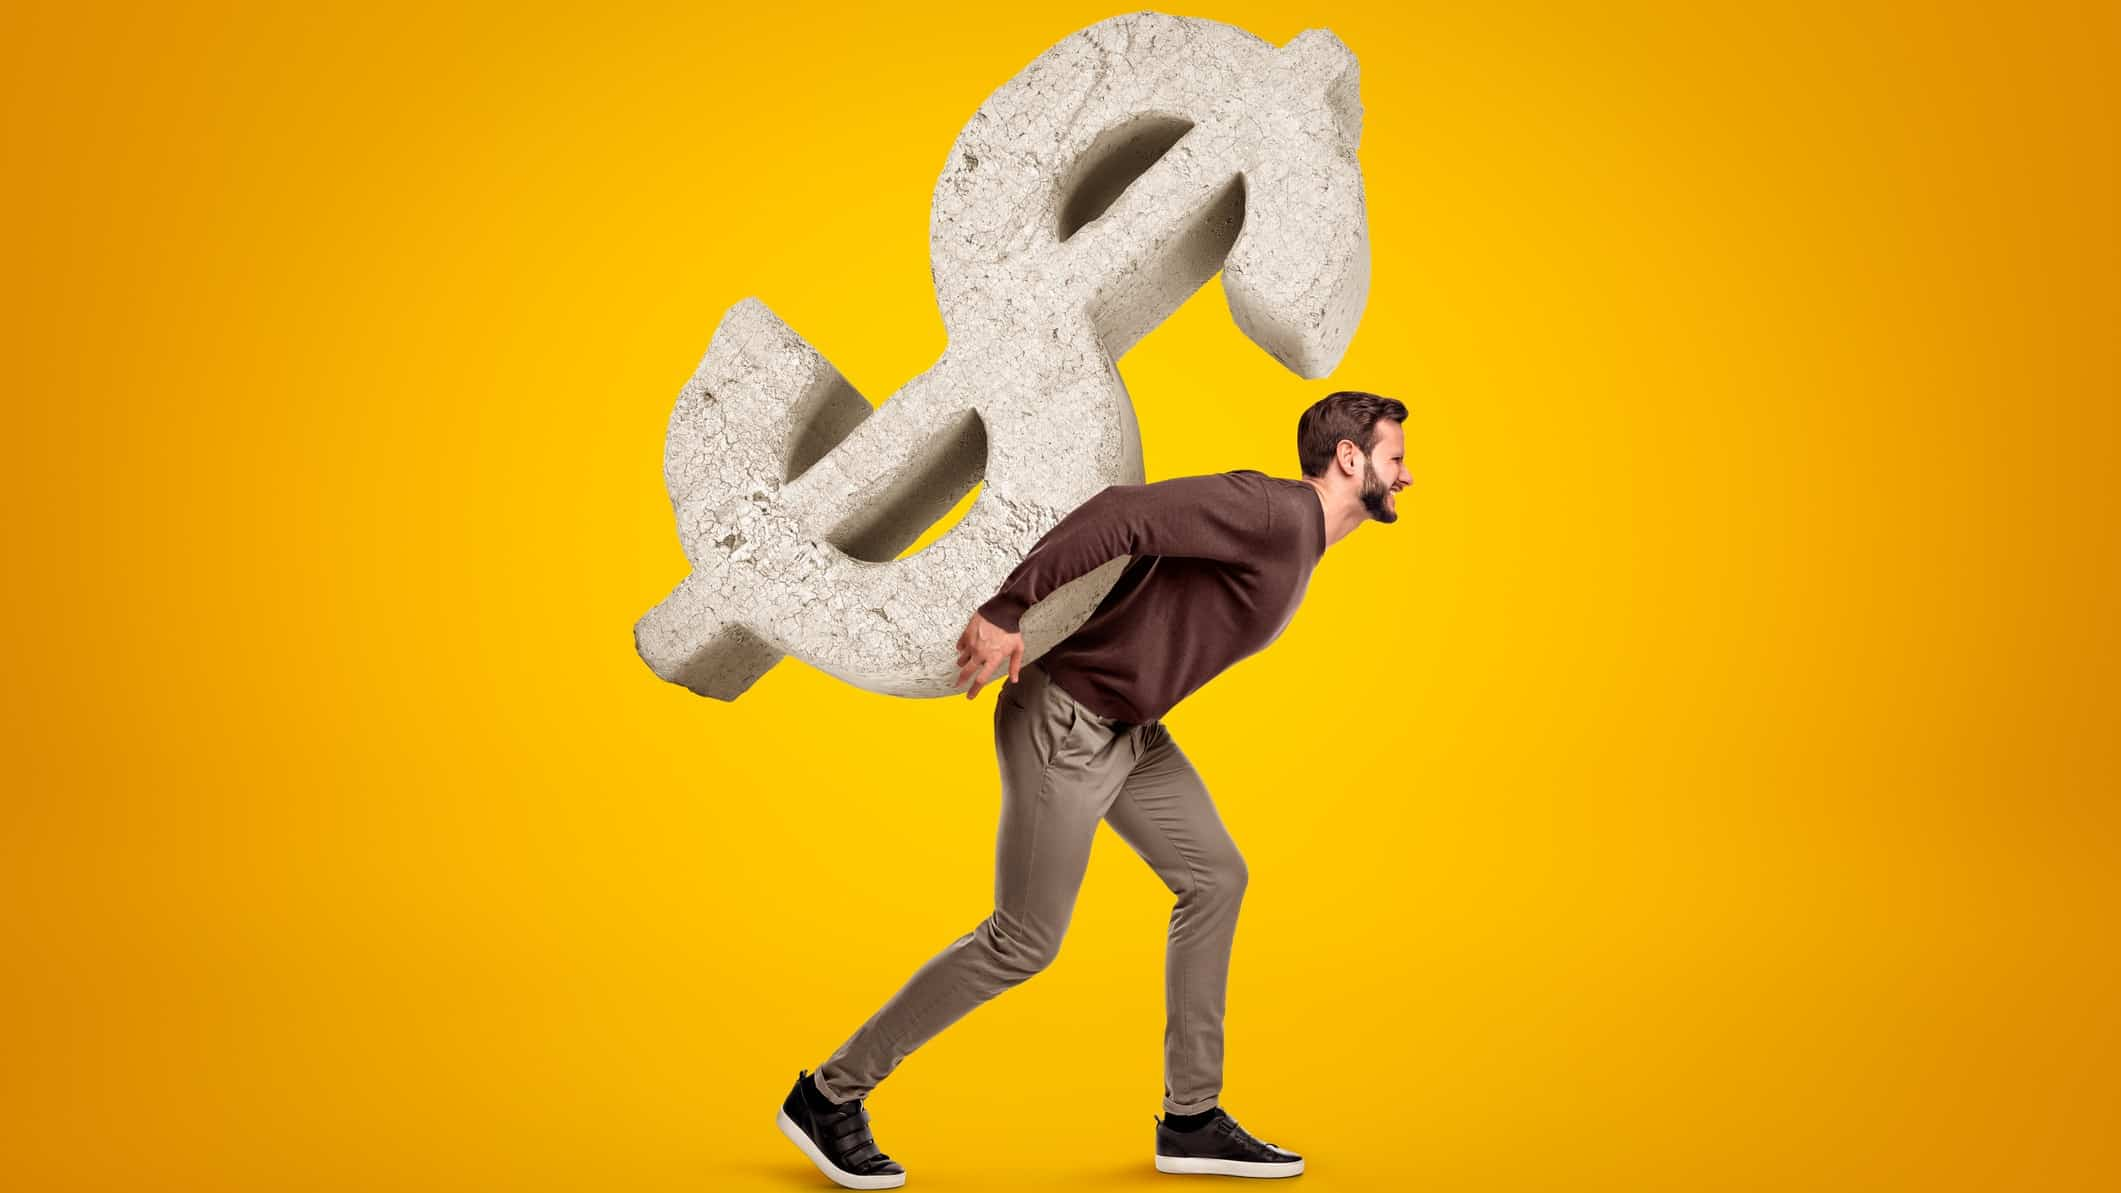 man carrying large dollar sign on his back representing high P/E ratio or dividend